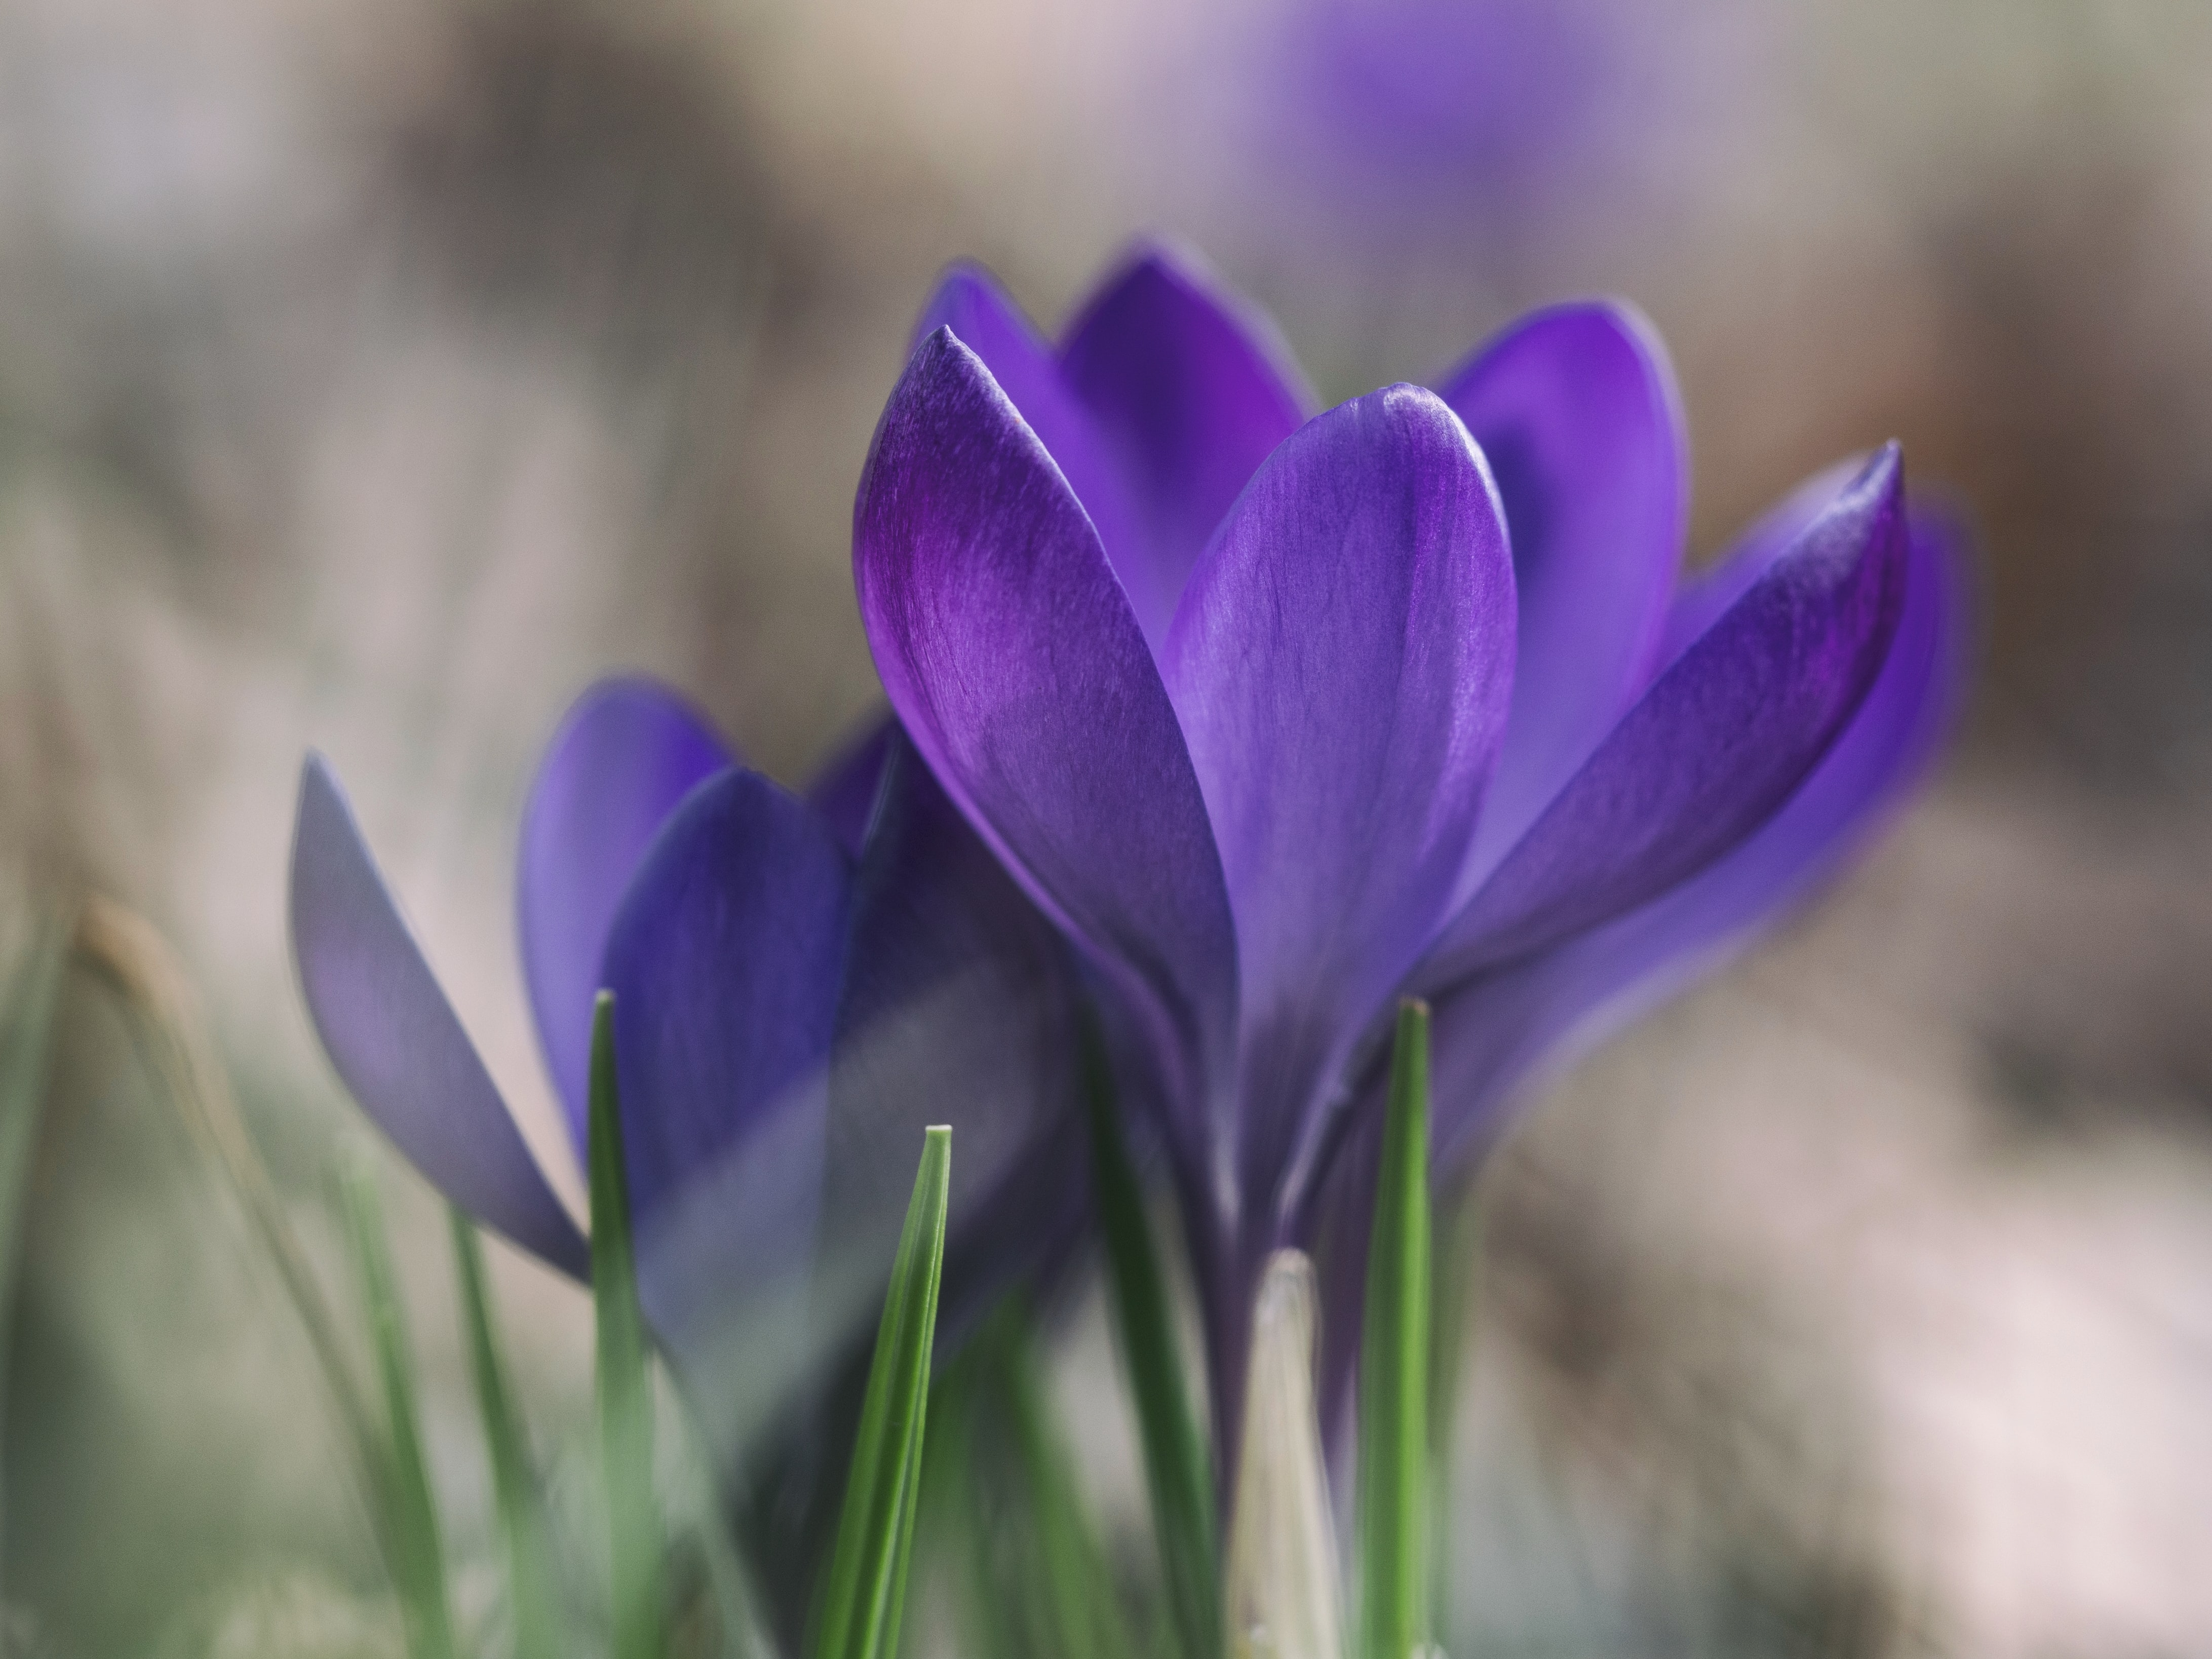 Close up of purple crocus flower pair in Spring